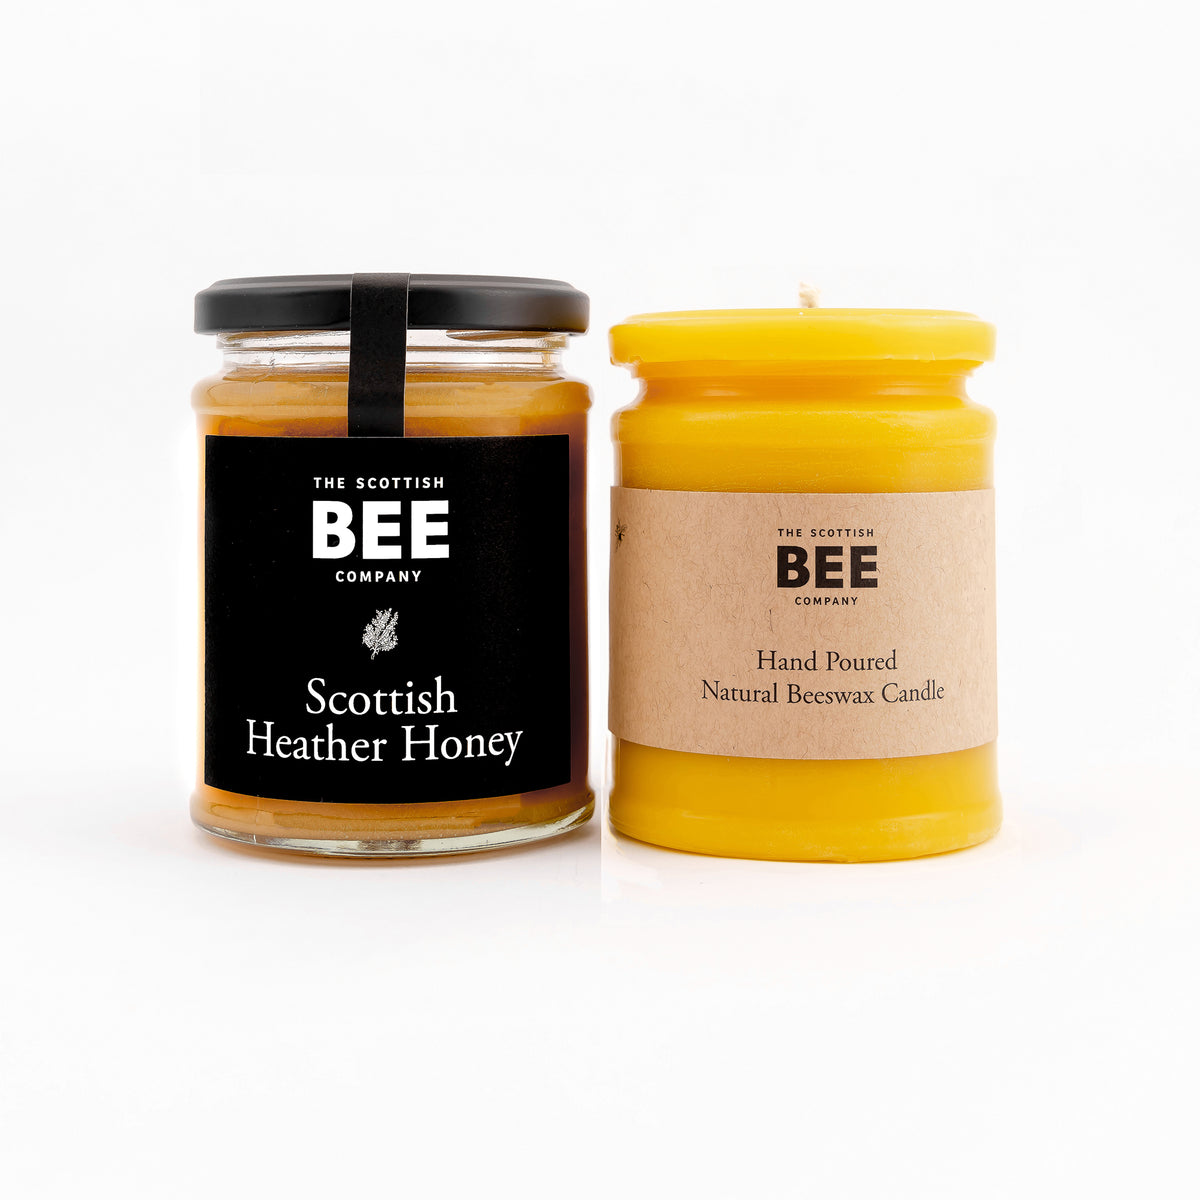 Scottish Heather Honey and Yellow Beeswax Candle